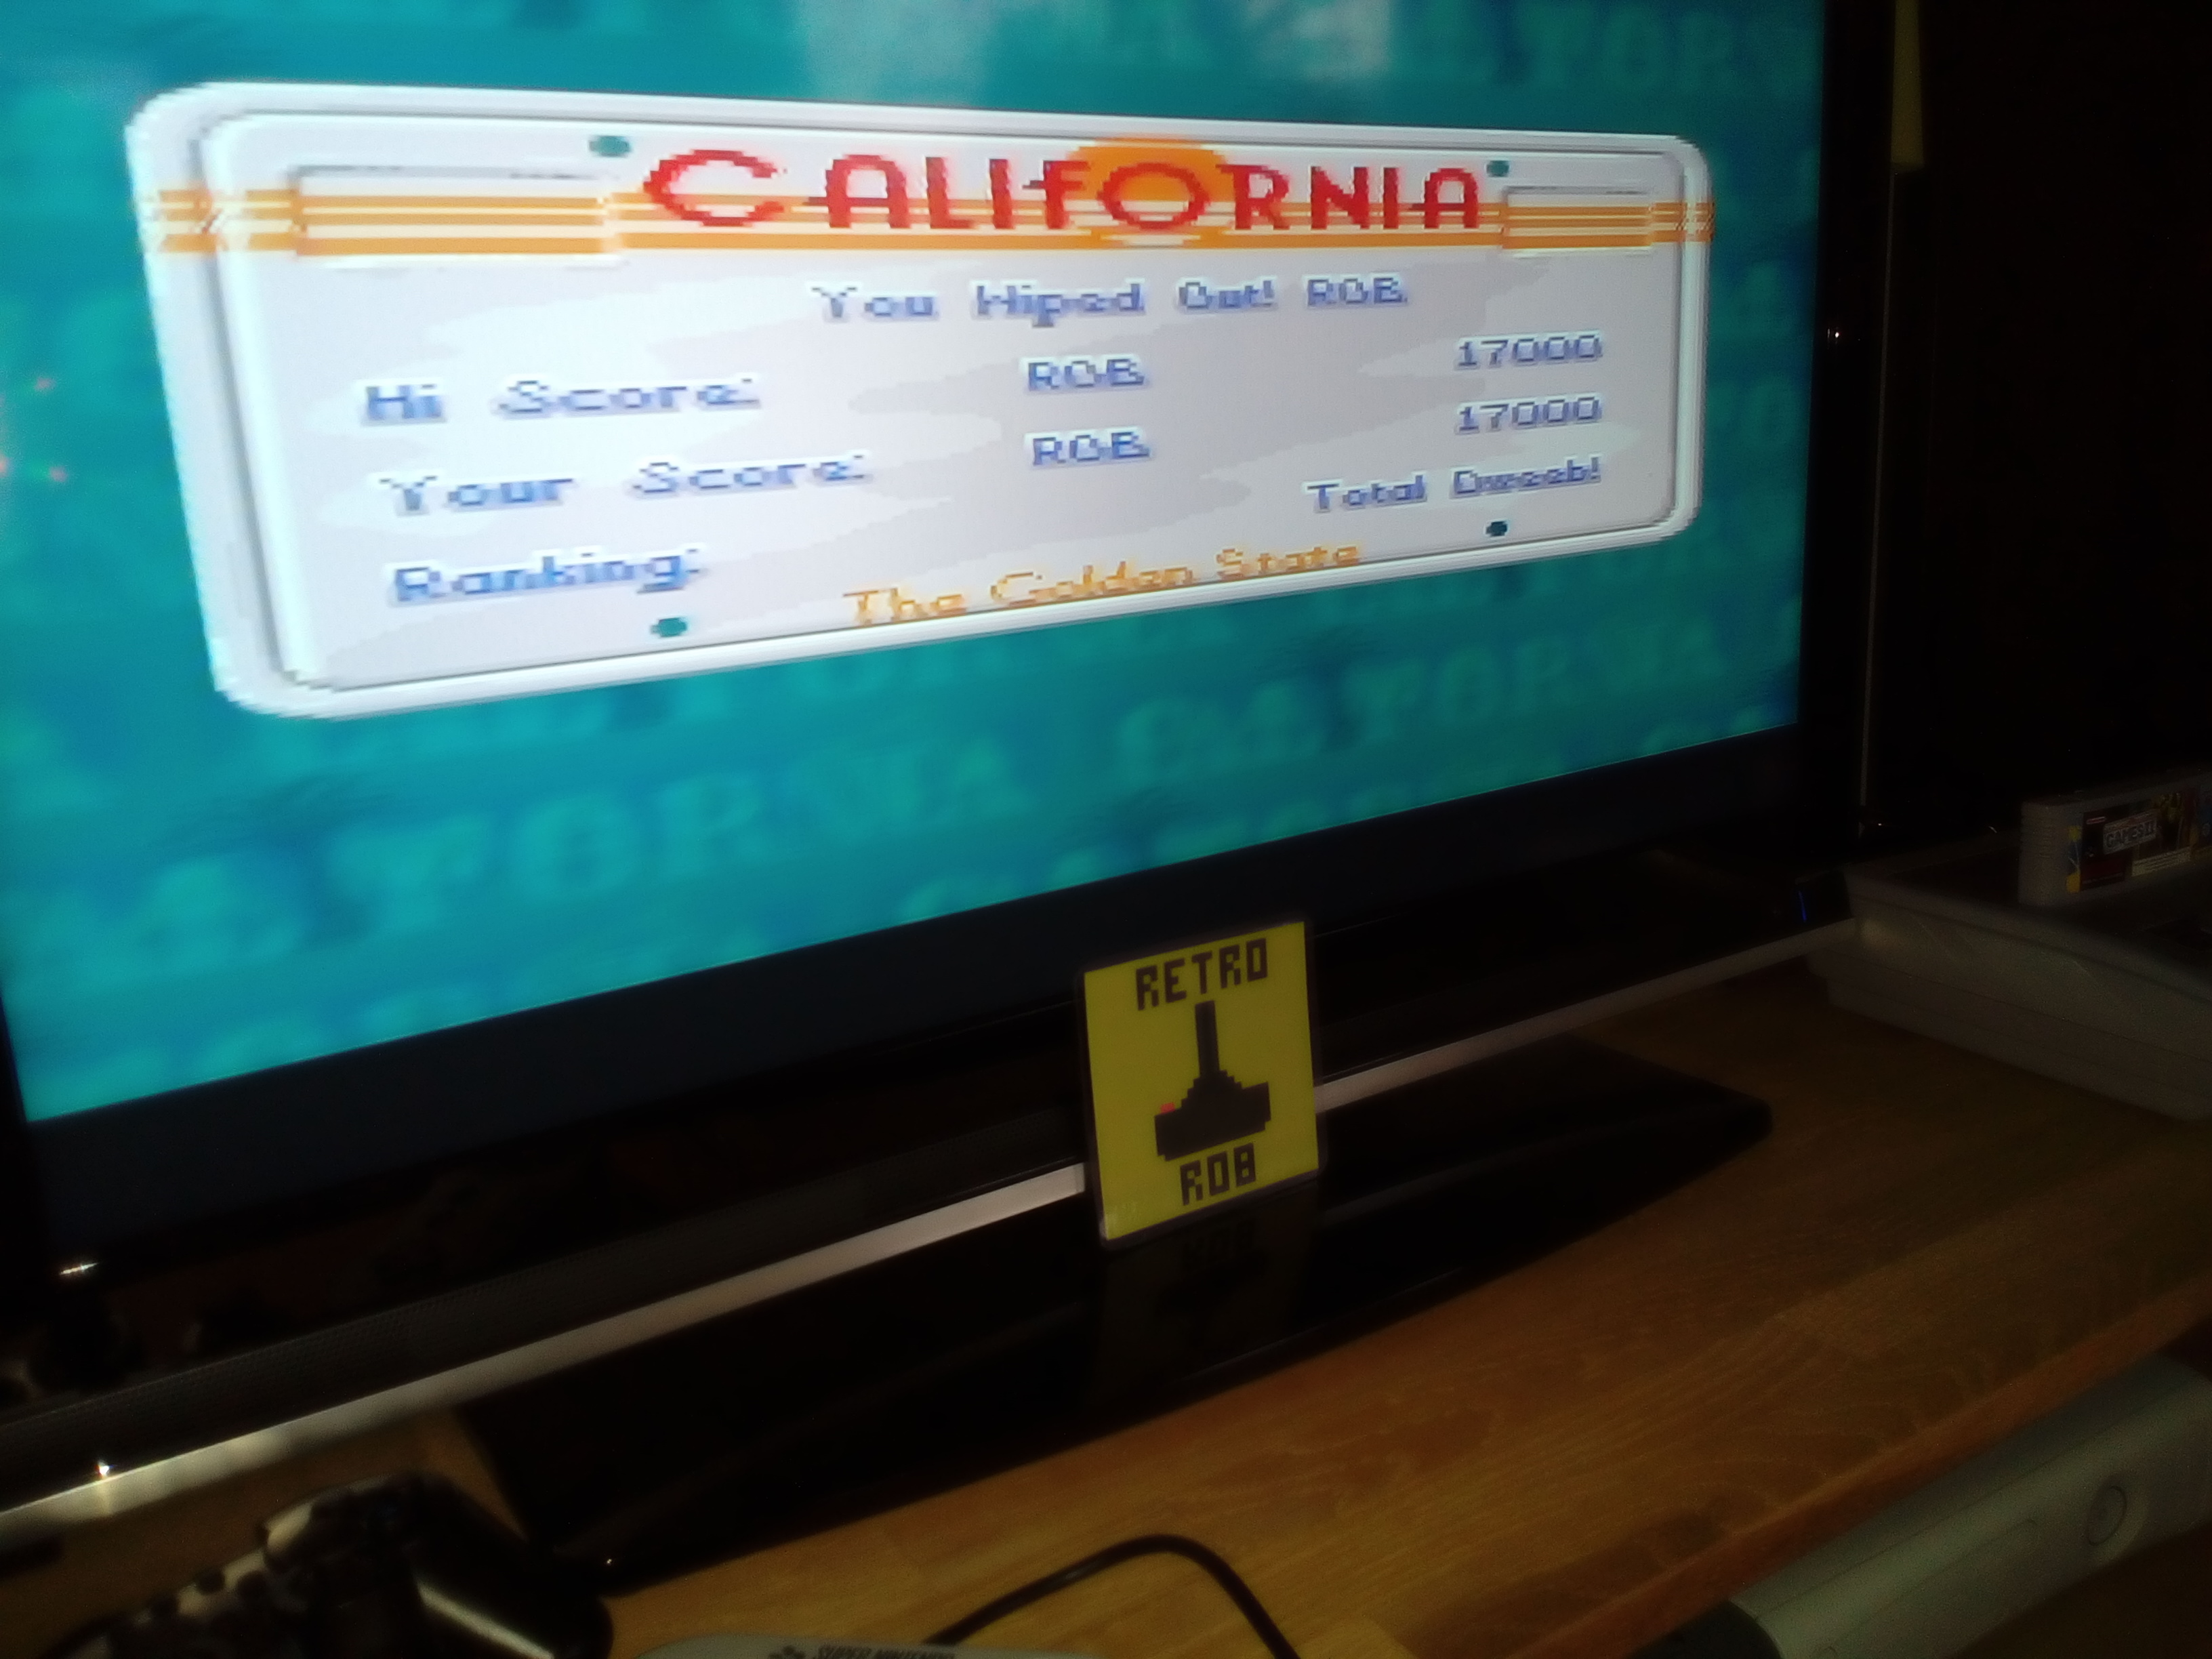 RetroRob: California Games II [Snowboarding] (SNES/Super Famicom) 17,000 points on 2019-03-10 08:29:08